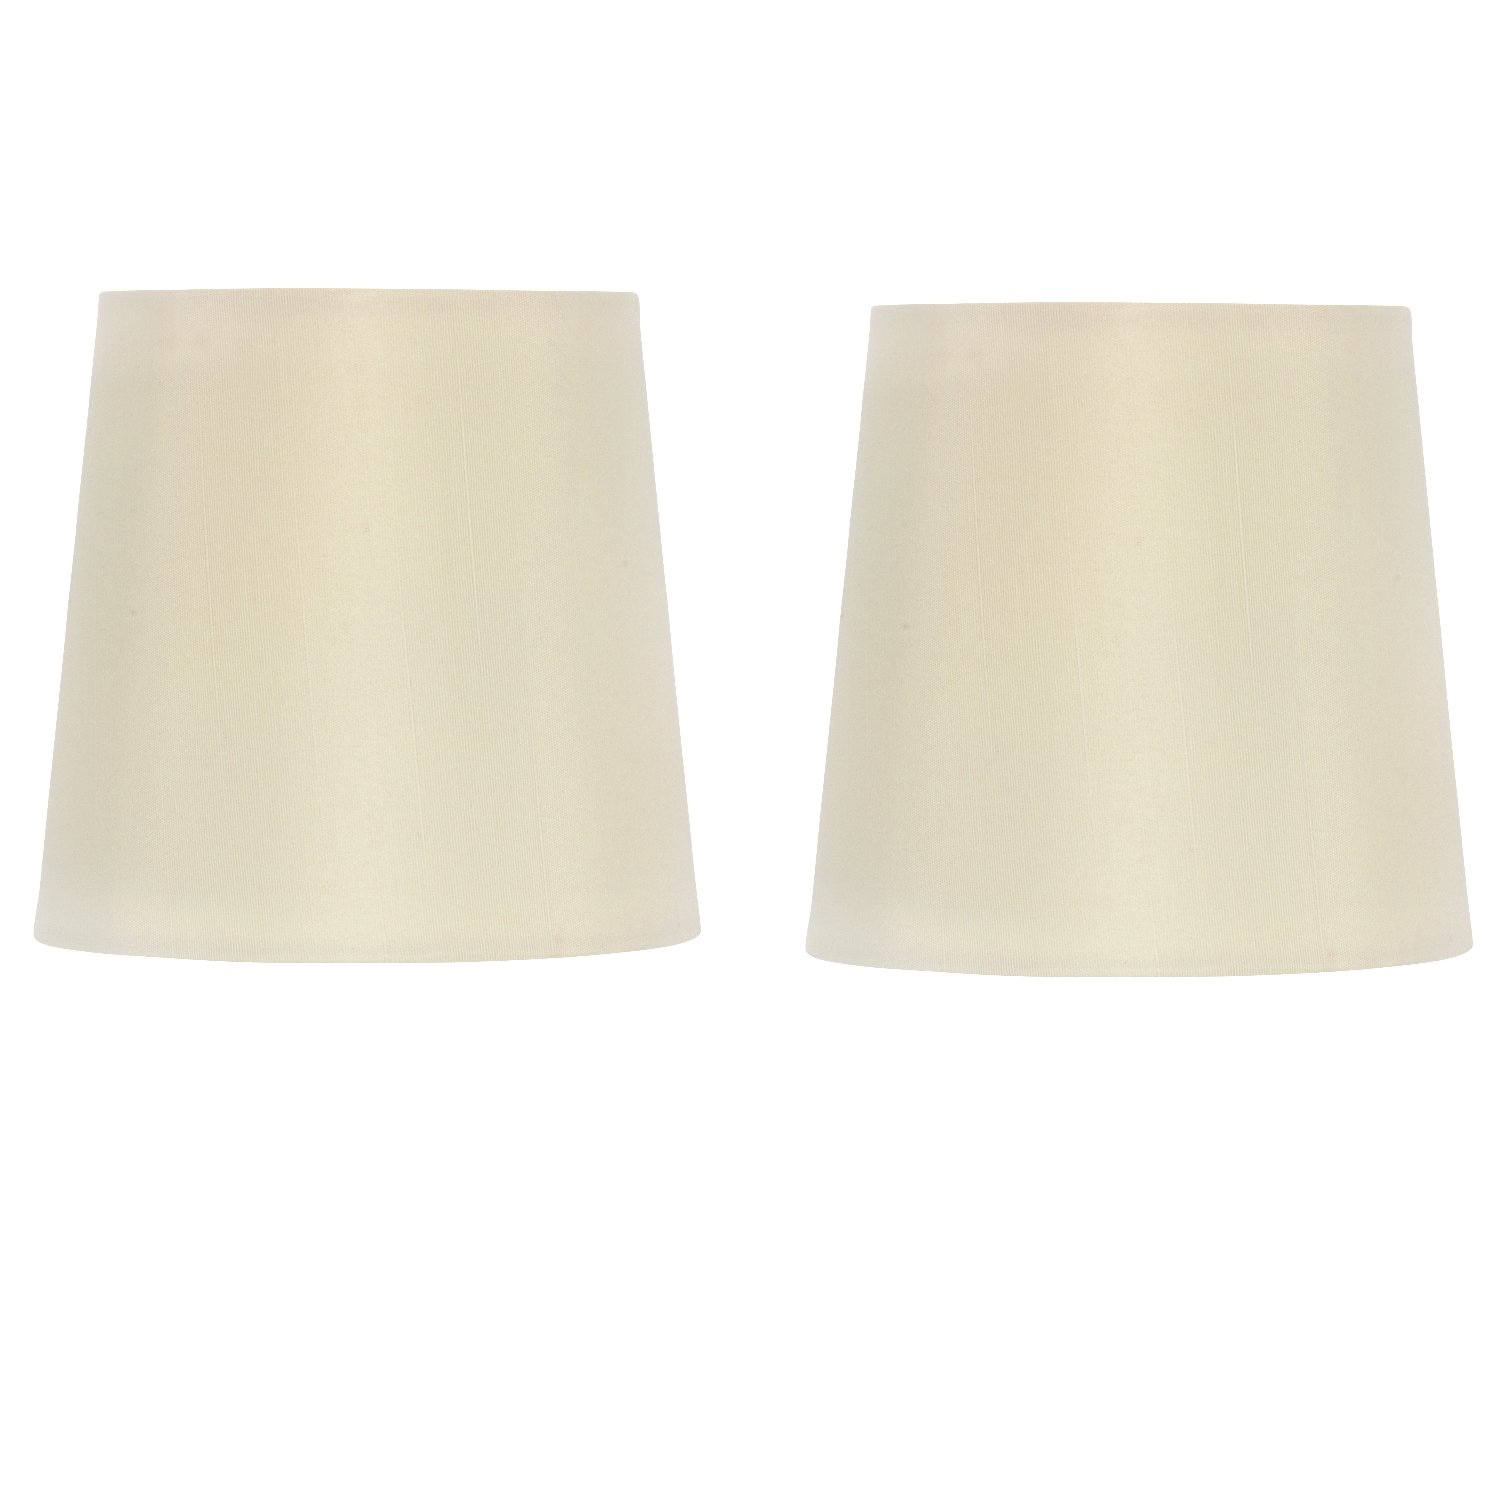 Upgradelights Eggshell Retro Drum 5 Inch Clip On Chandelier Lamp Shade (Set of 2) 4x5x5